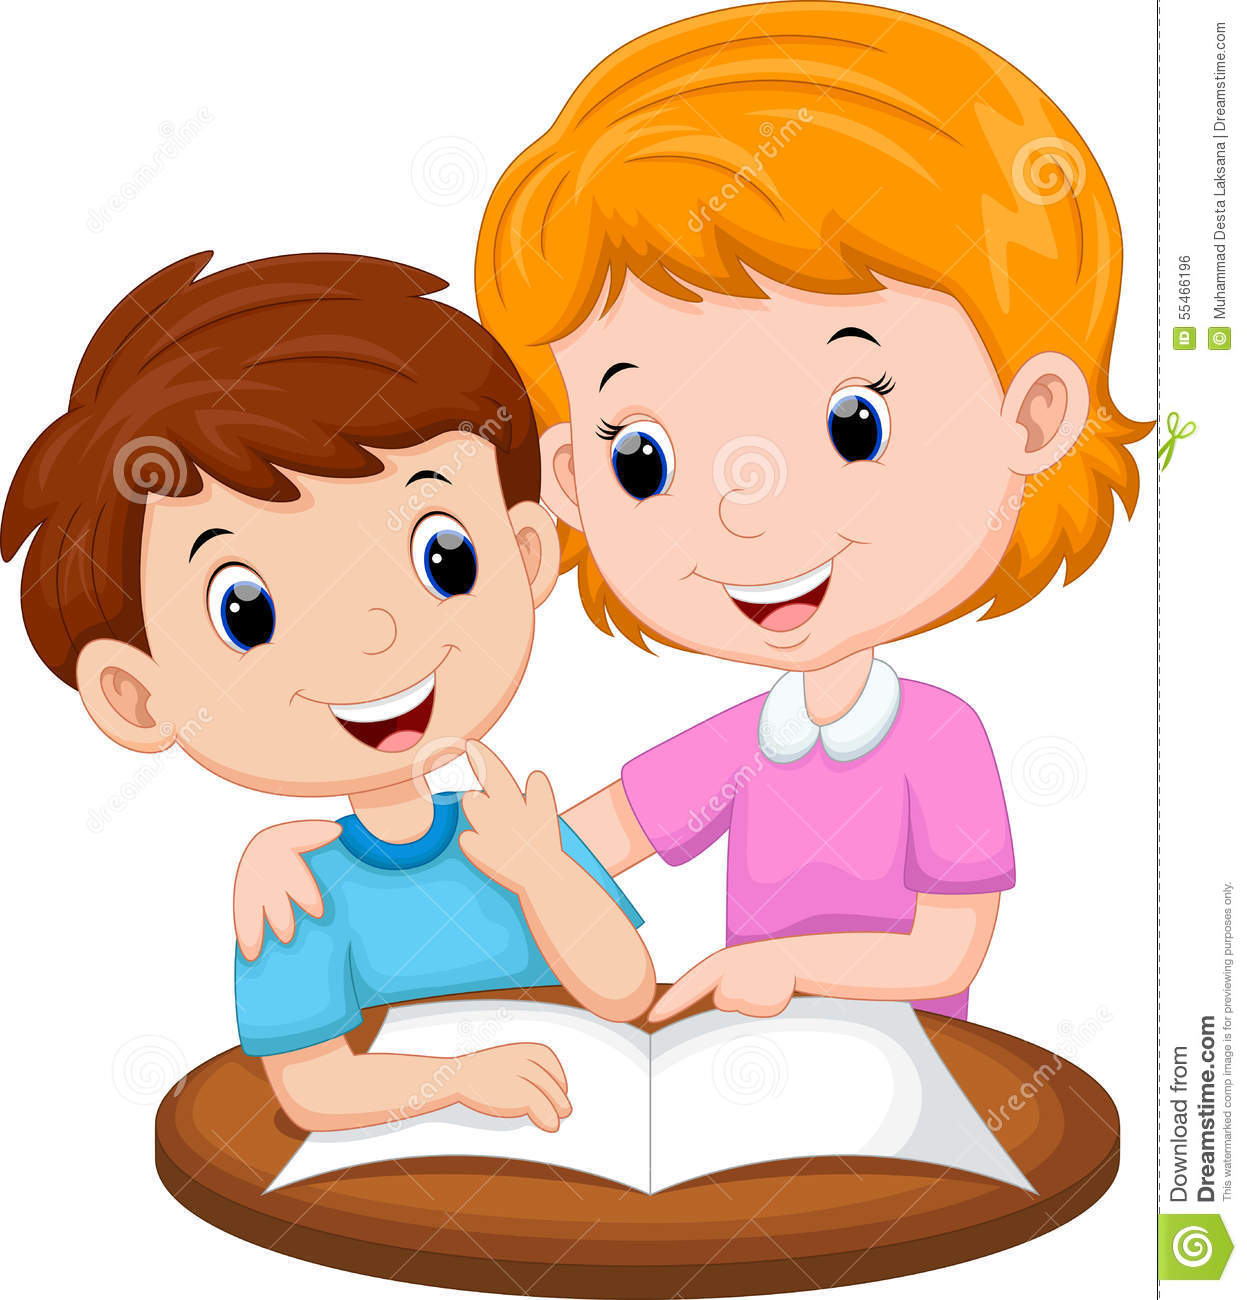 Clipart Teacher And Child.